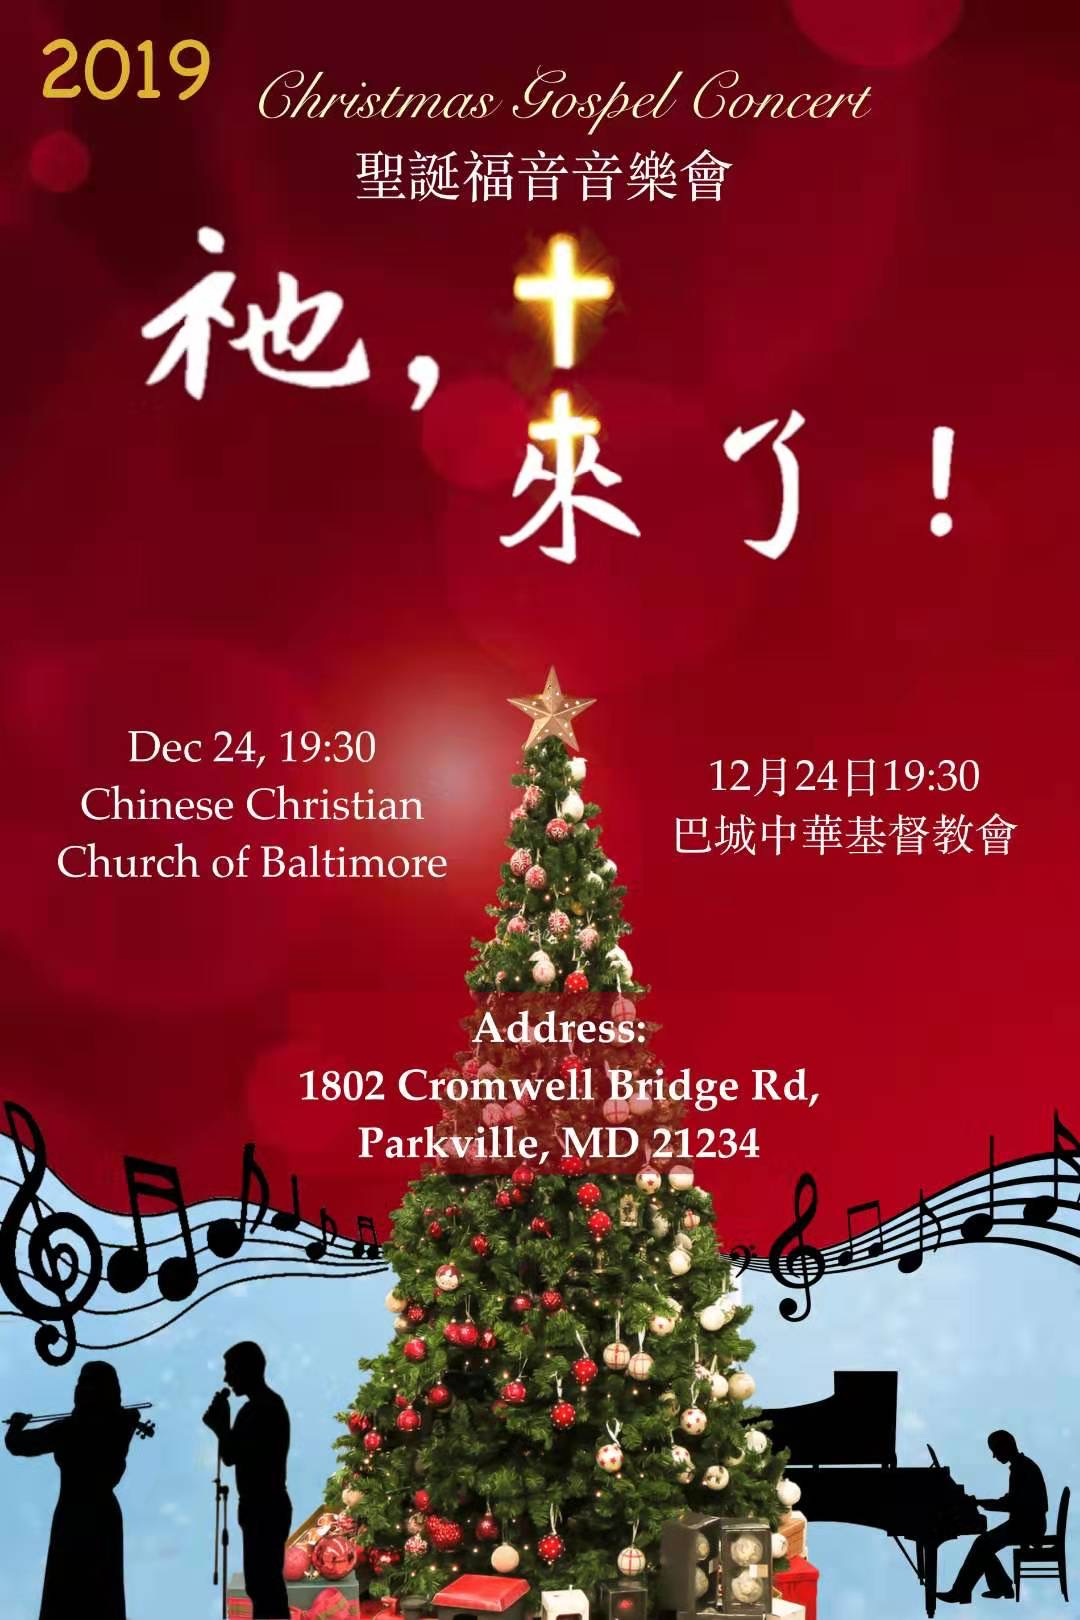 Christmas Baltimore Concerts 2020 Christmas Gospel Concert – Chinese Christian Church of Baltimore